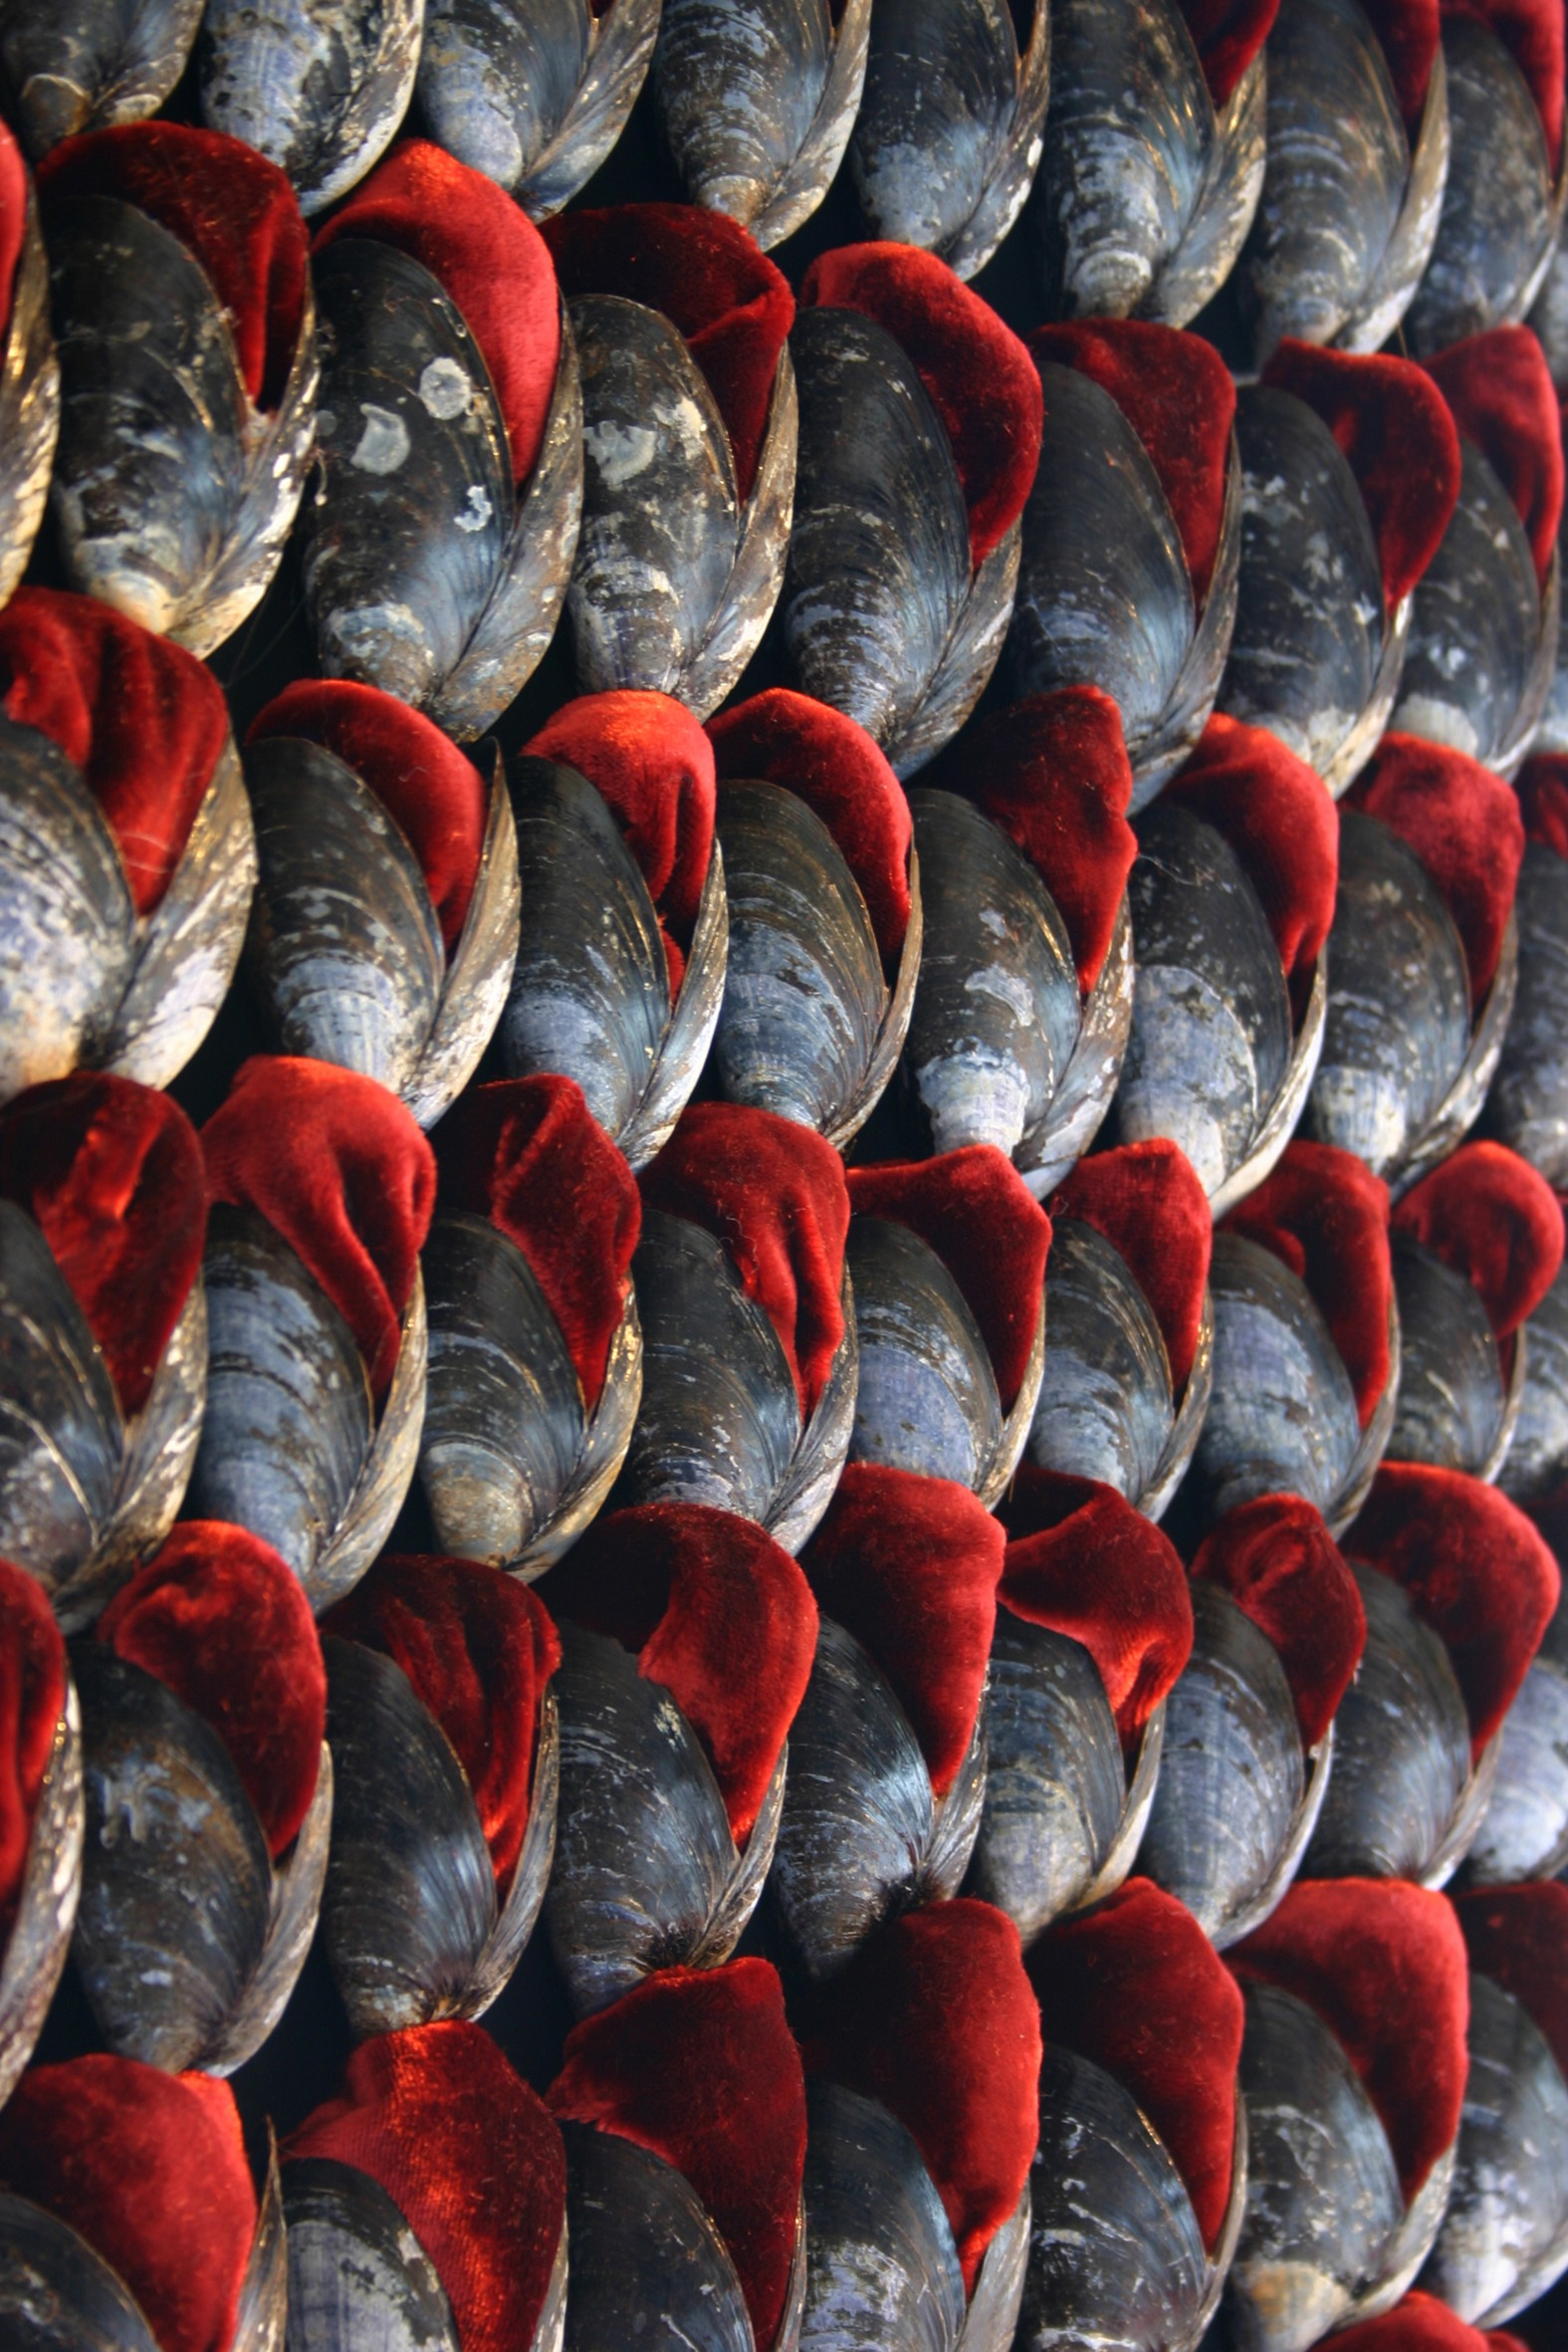 A close up of dozens of mussel shells stuffed with red velvet.